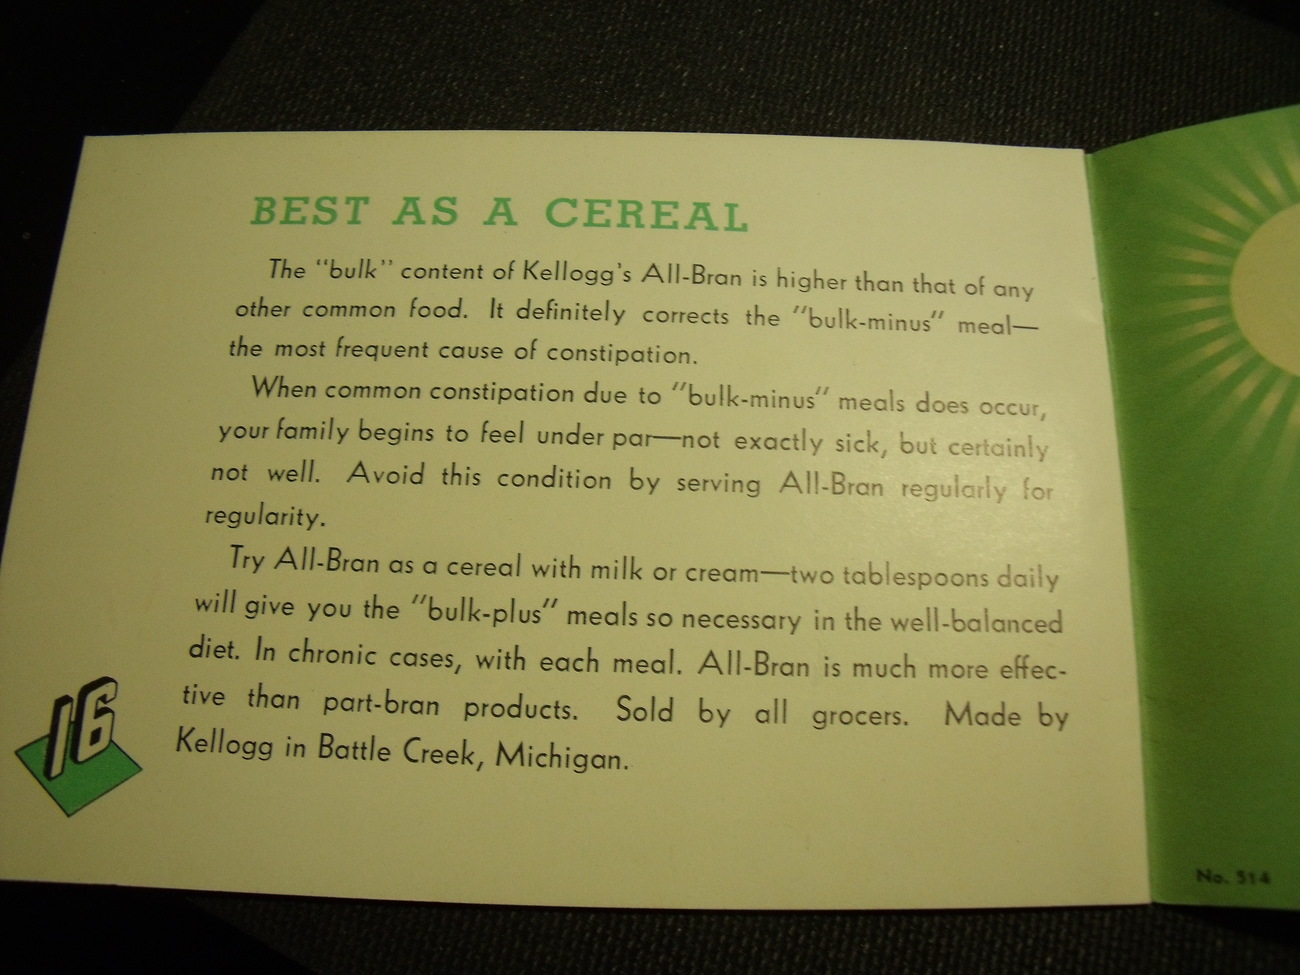 Original Kellogg's All-Bran recipes and uses